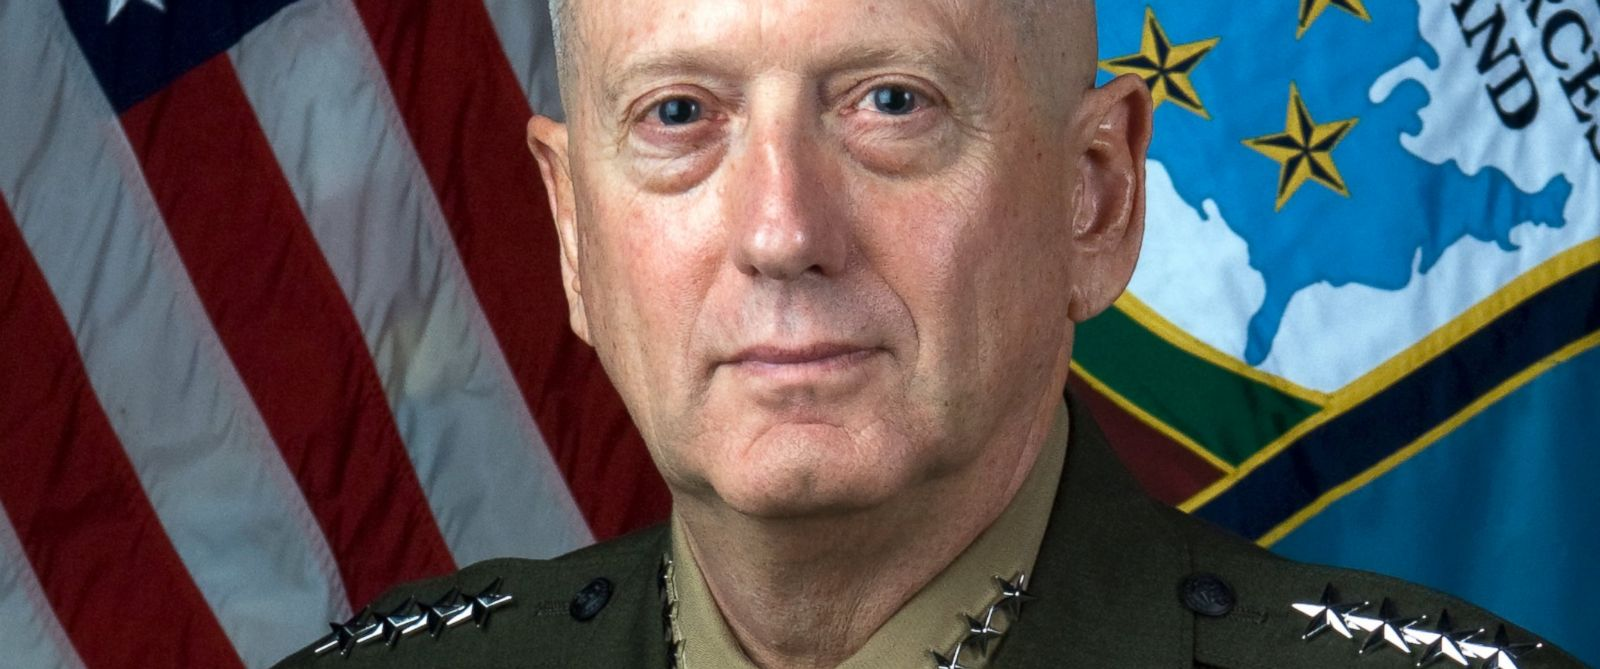 PHOTO: The Senate confirmed Marine Corps Gen. James N. Mattis as the commander of U.S. Central Command, Aug. 6, 2010.